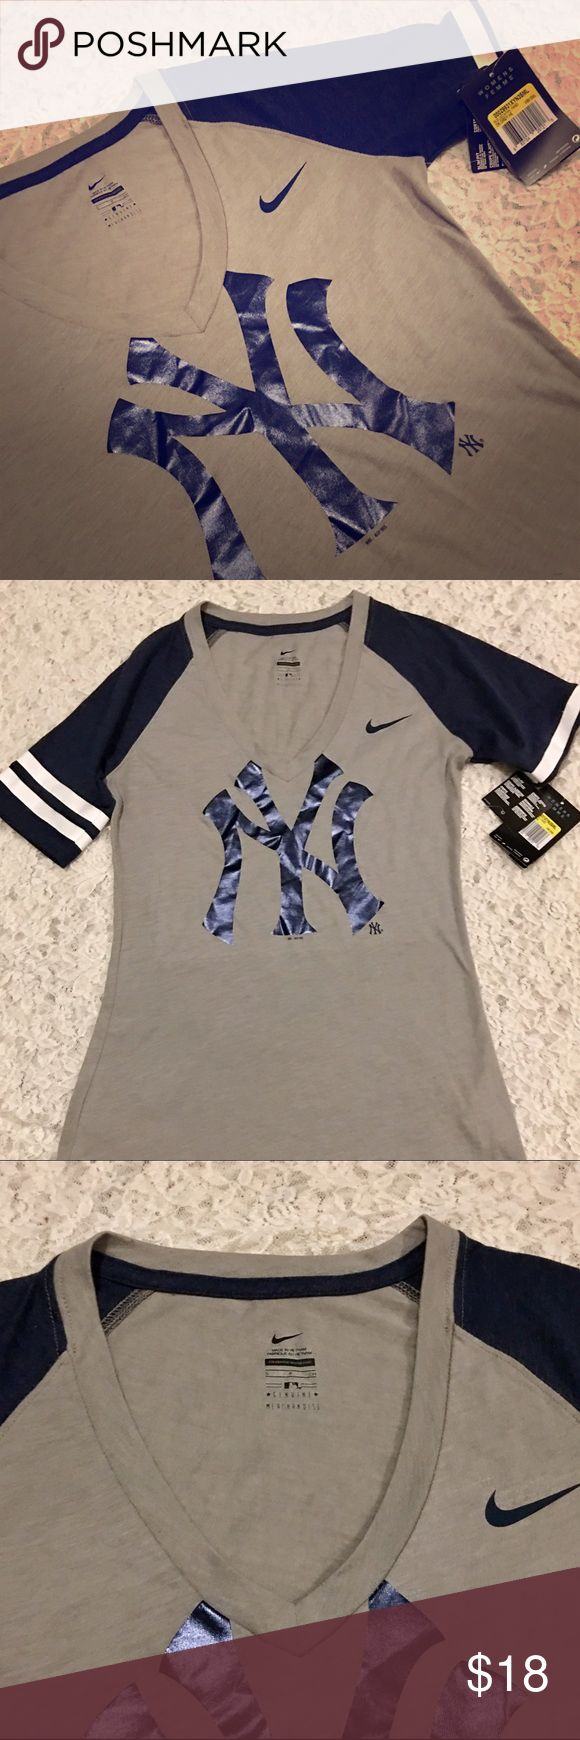 NEW YORK YANKEES 'NIKE FEMME' V NECK SHIRT SZ S Brand new with tags, New York Yankees 'Femme Nike' V Neck T Shirt, Size Small. MATERIAL Composition is 60% Cotton & 40% Polyester & it is a Slim Fit Shirt with No Flaws or Defects. I'm Just Not a NY Fan. Retail was 40.00$ Offers Welcome, So Make One! Nike Tops Tees - Short Sleeve